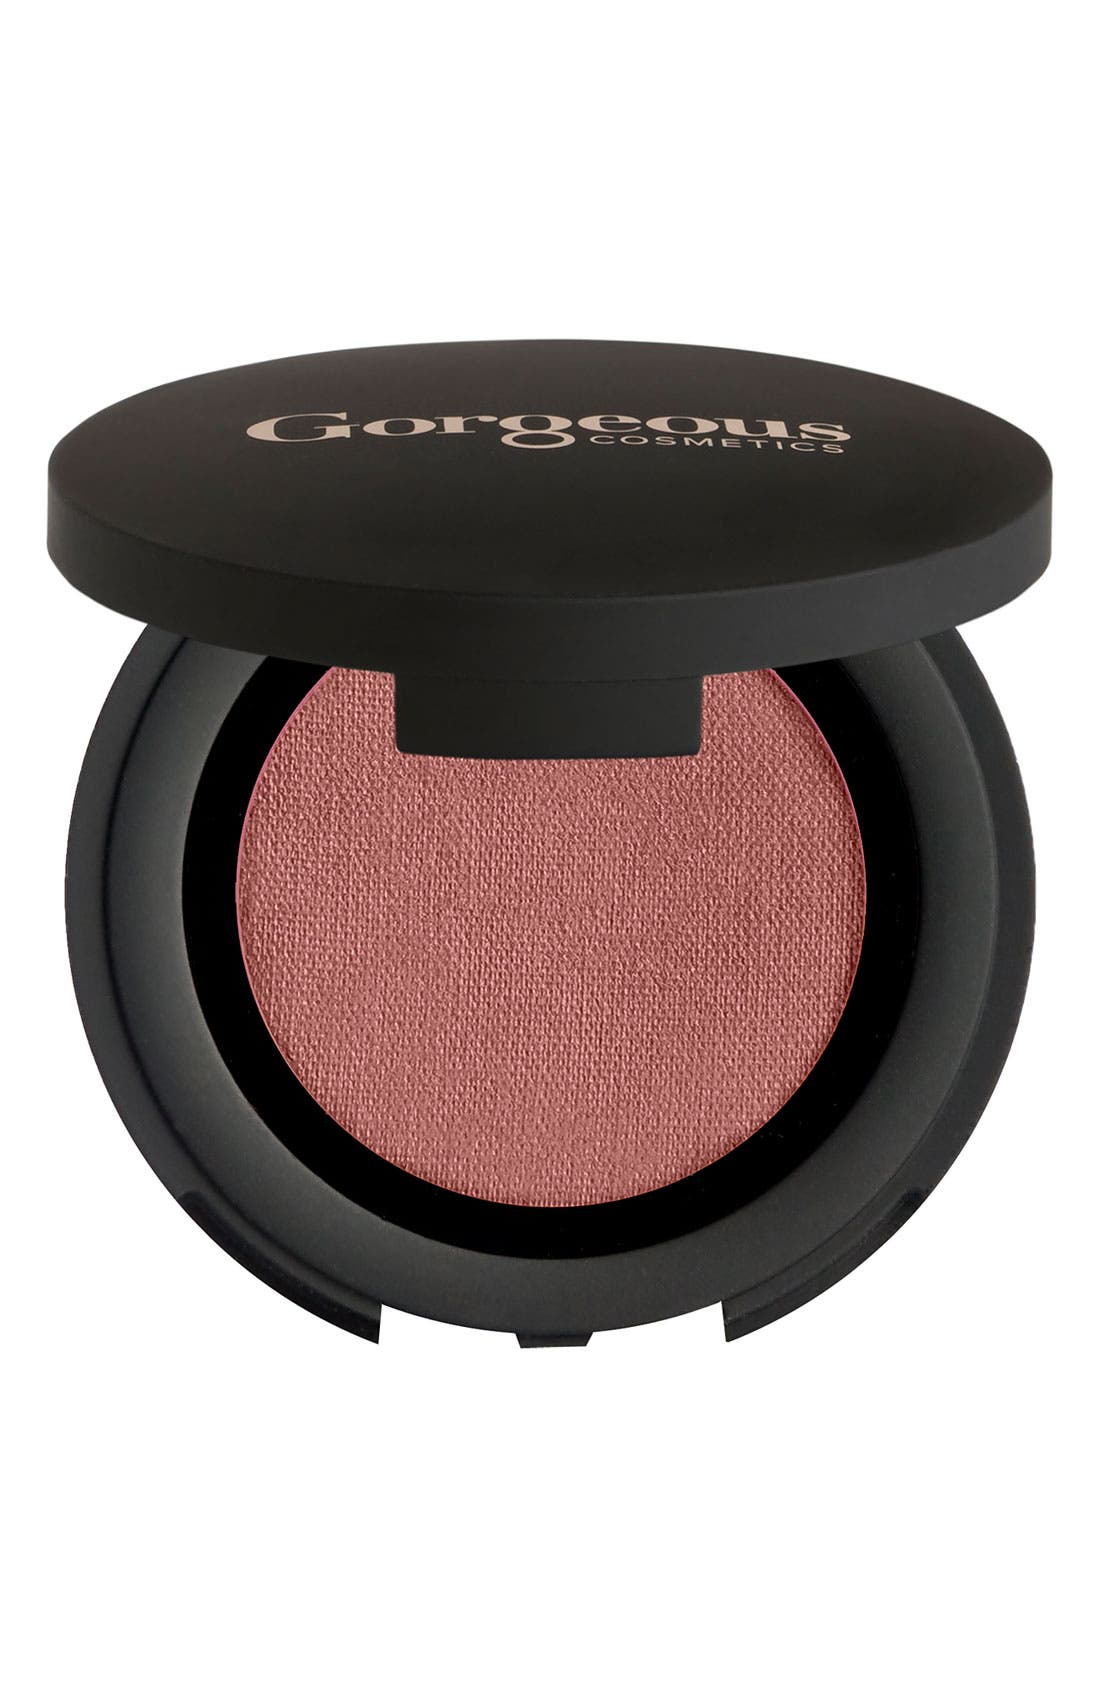 'Colour Pro' Eyeshadow,                             Main thumbnail 1, color,                             950